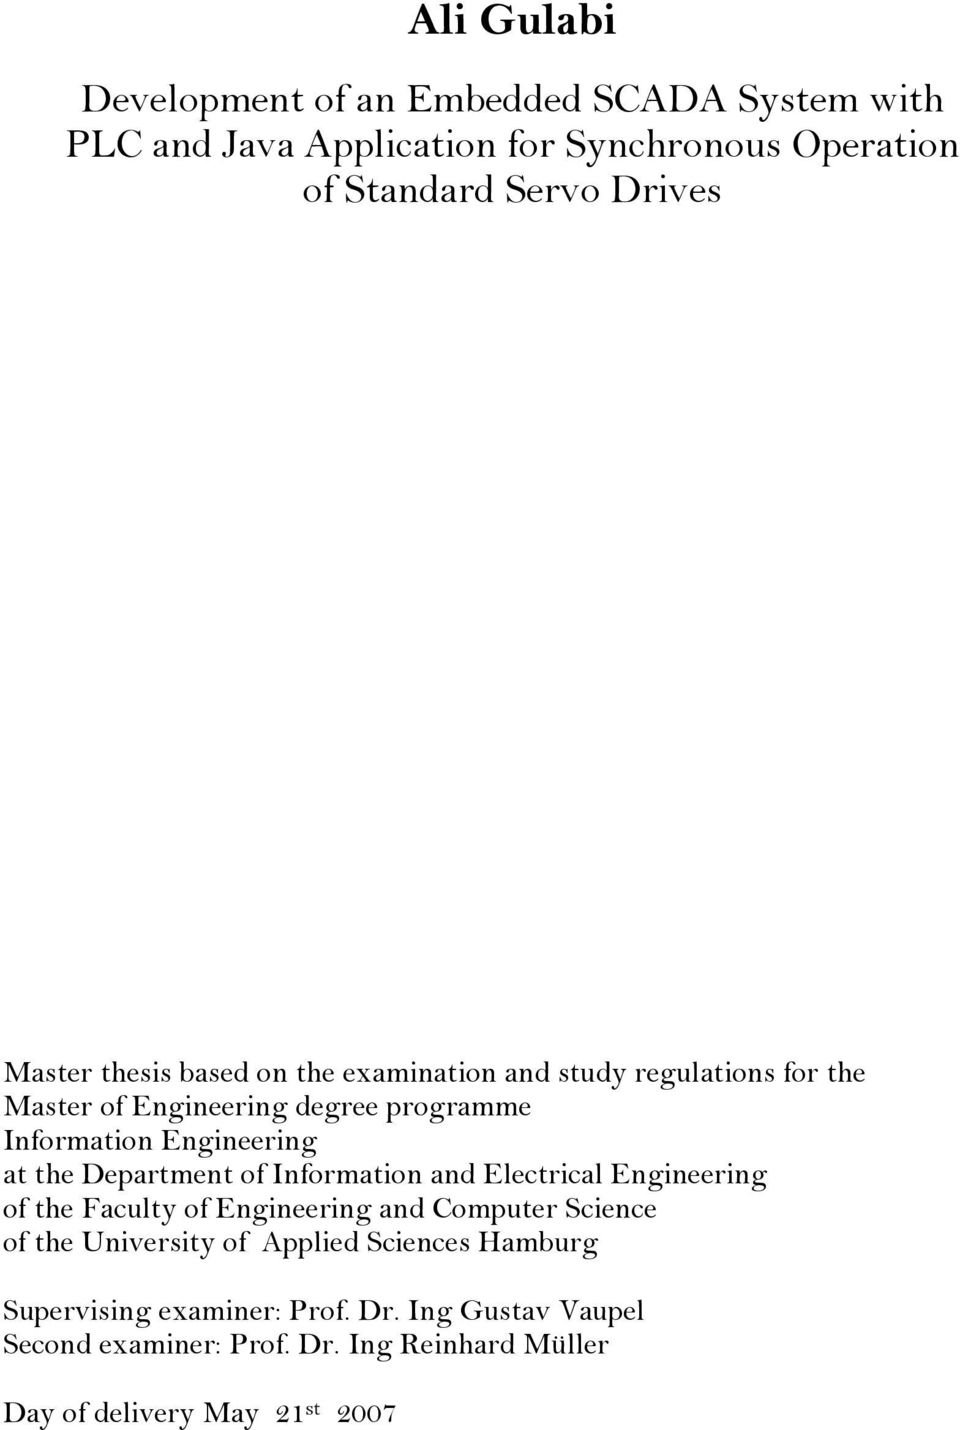 Thesis only phd computer science engineering pdf download